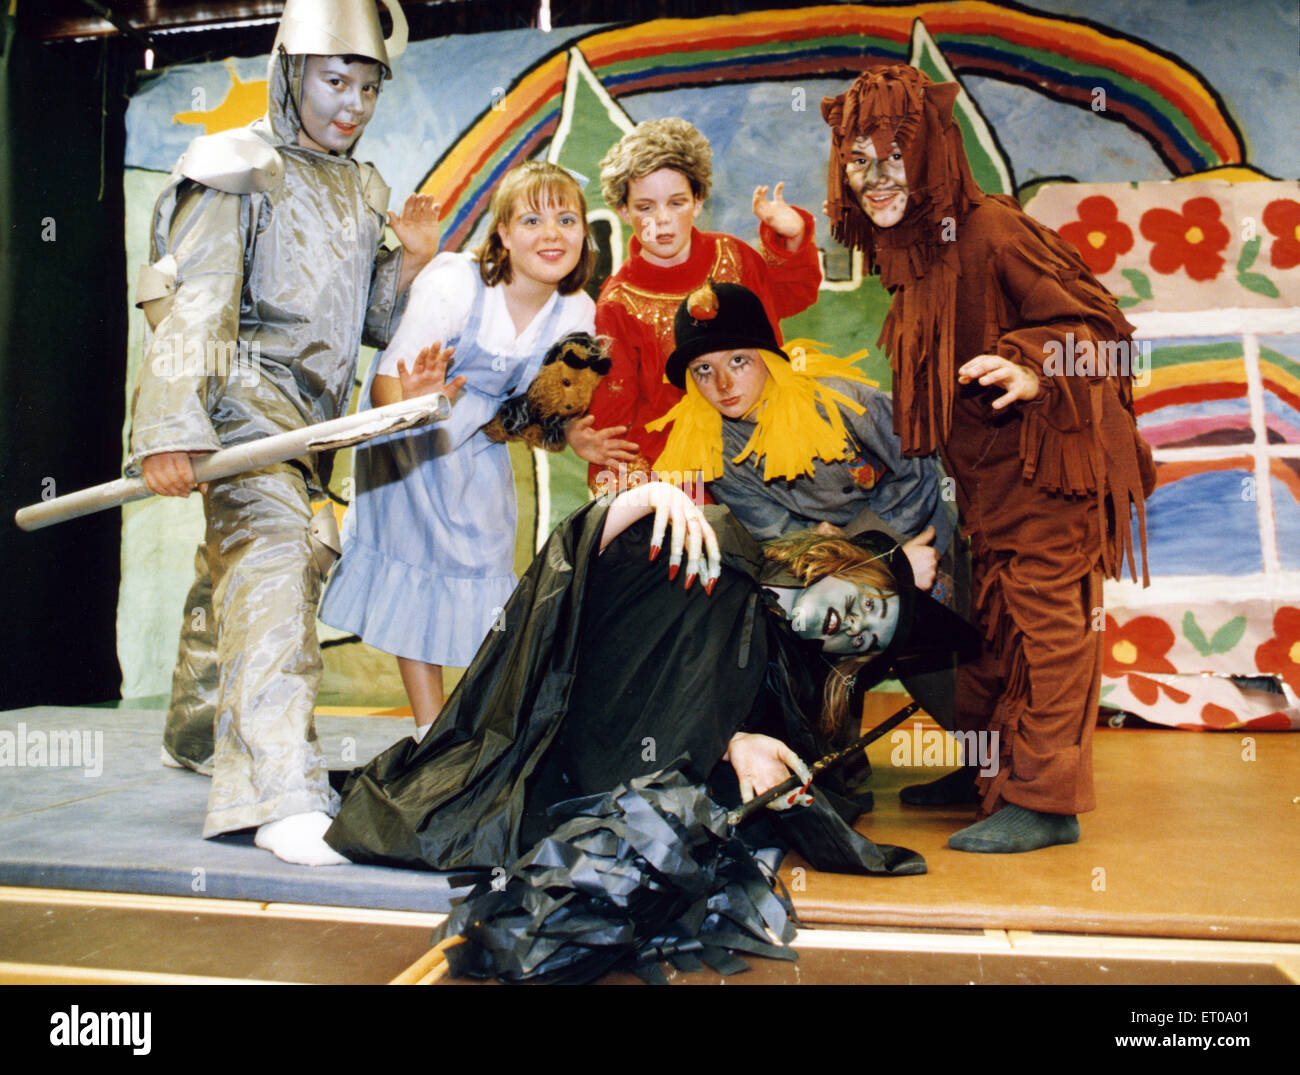 Scene from the Wizard of Oz, presented by pupils from St Joseph's Primary School, Billingham. Watching the Wicked - Stock Image